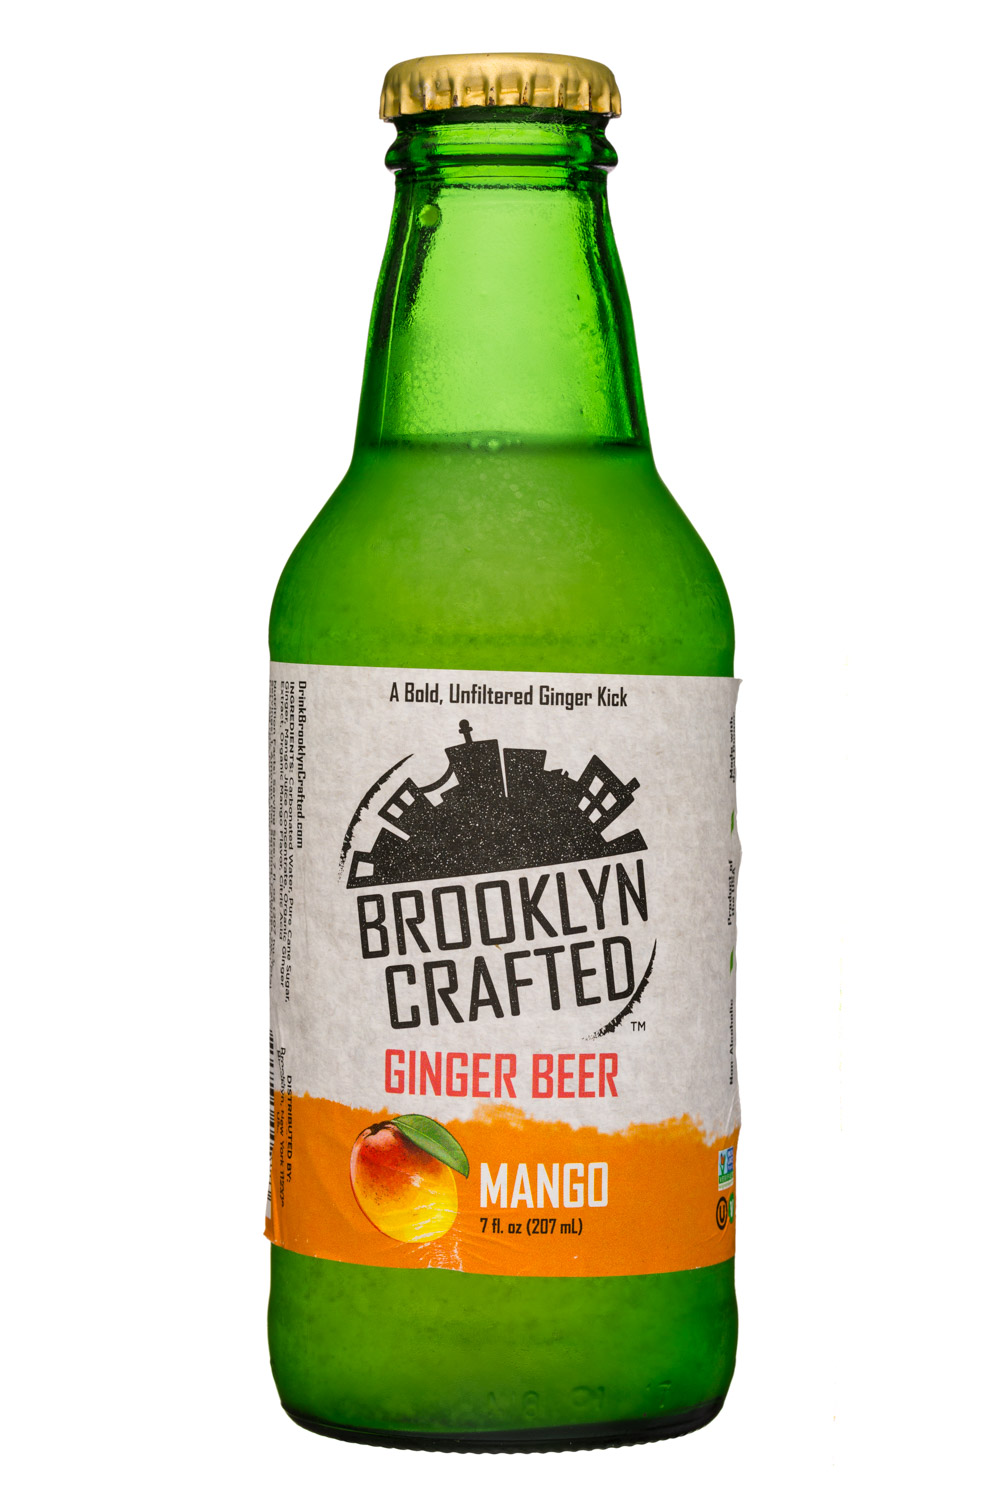 Brooklyn Crafted: BrooklynCrafted-7oz-GingerBeer-Mango-Front